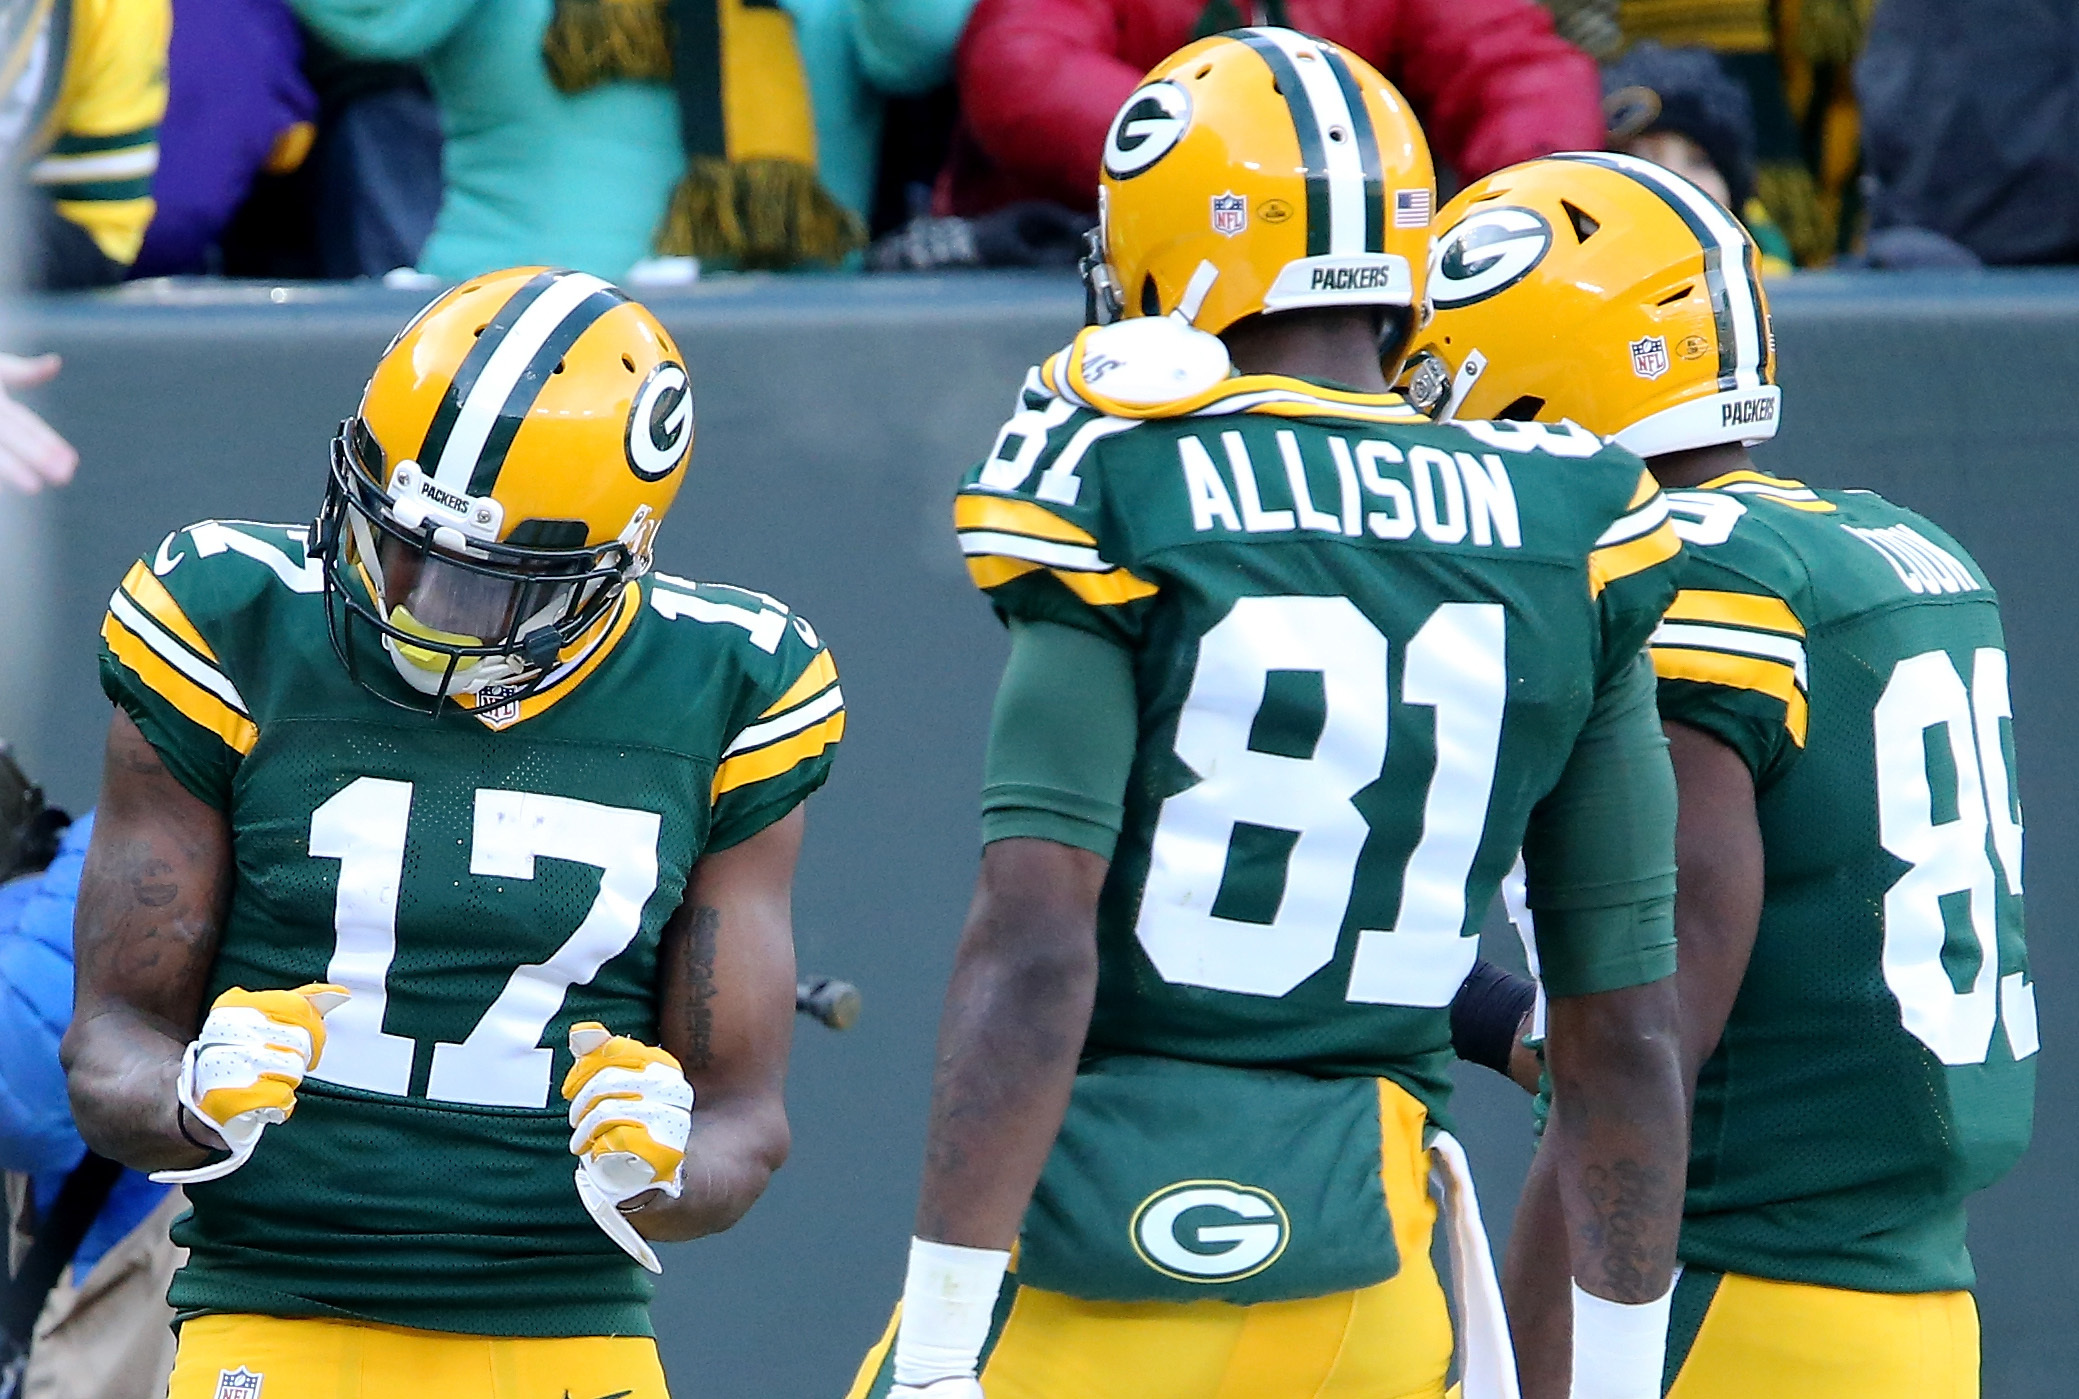 fe153e433 NFC North to be decided by Detroit Lions vs. Green Bay Packers